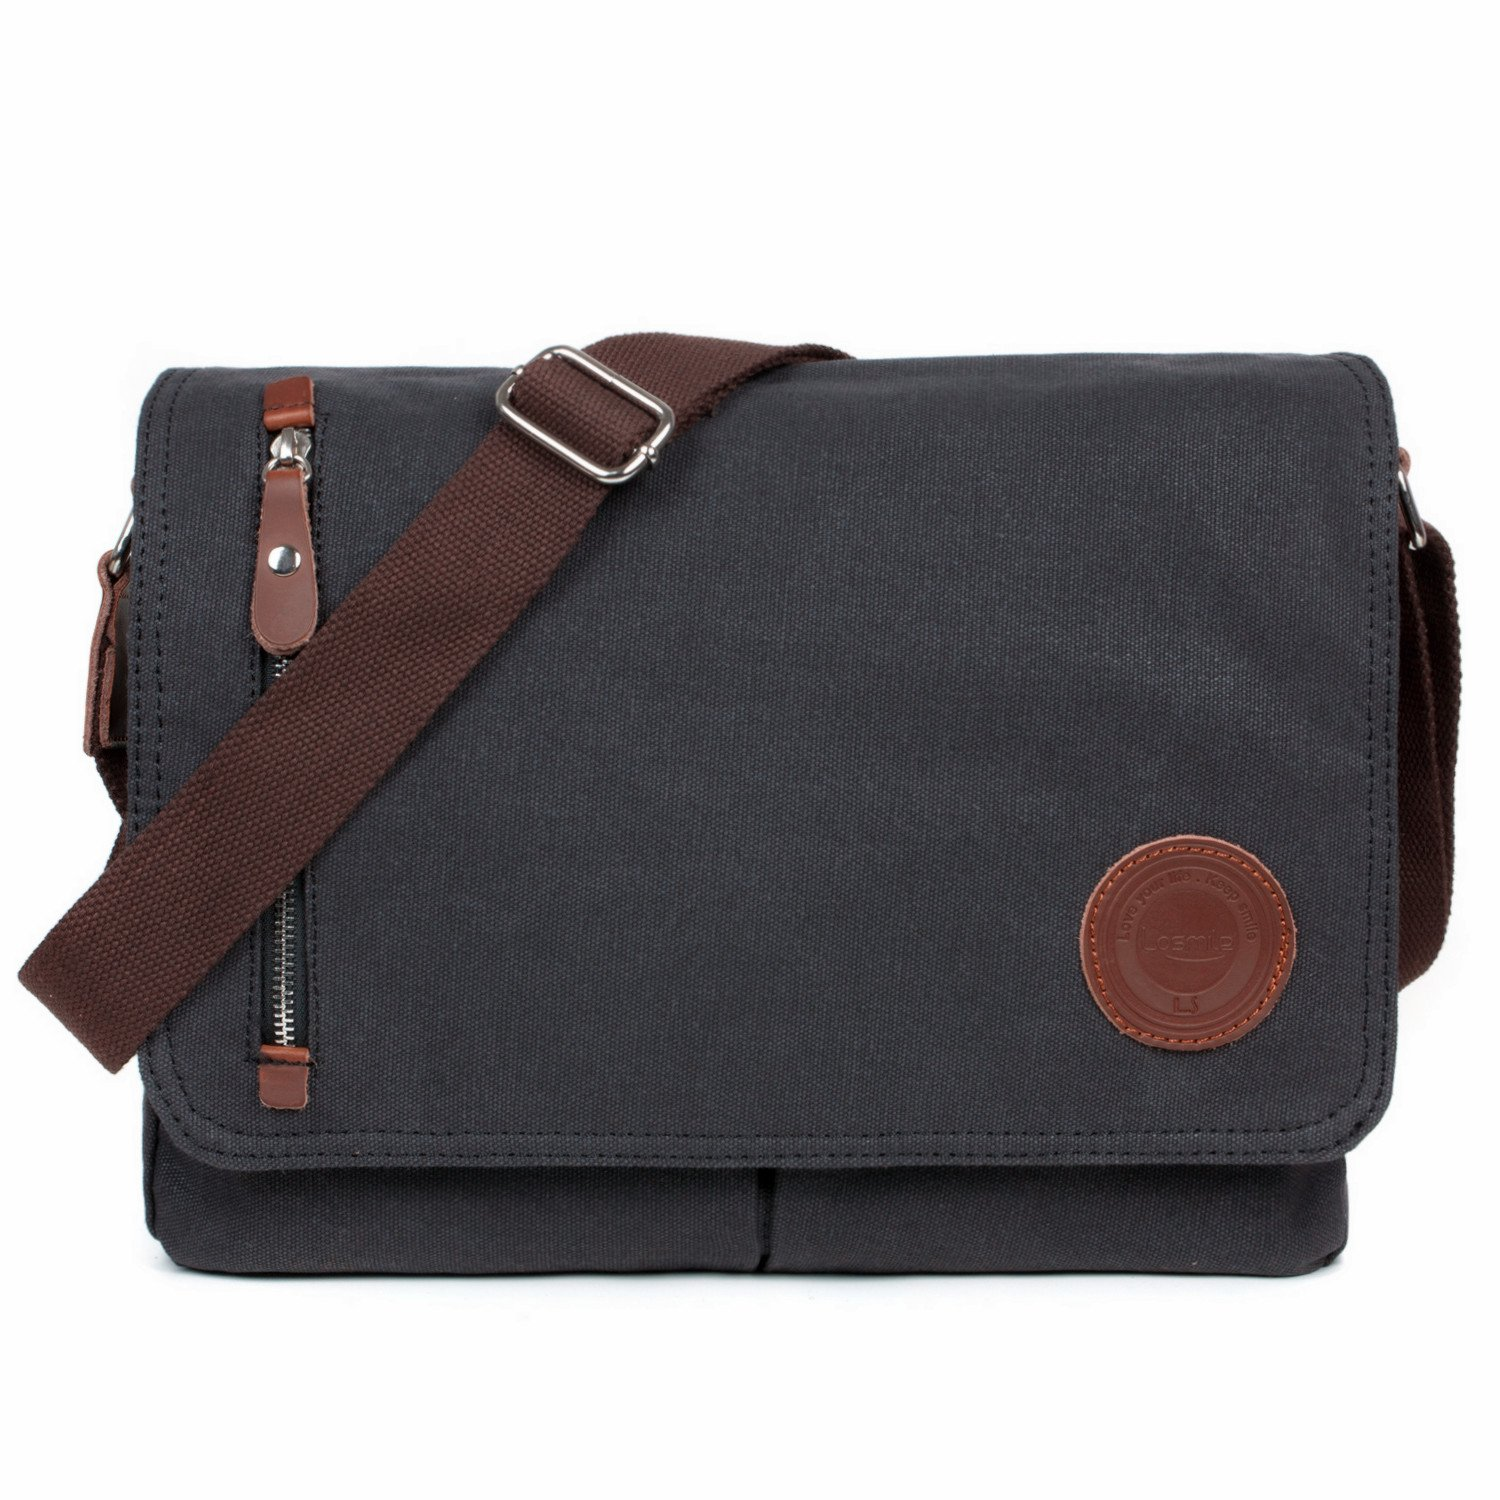 LOSMILE Mens Canvas Messenger Shoulder Bag. (Black)  Amazon.co.uk  Luggage 200e2b82a05c1